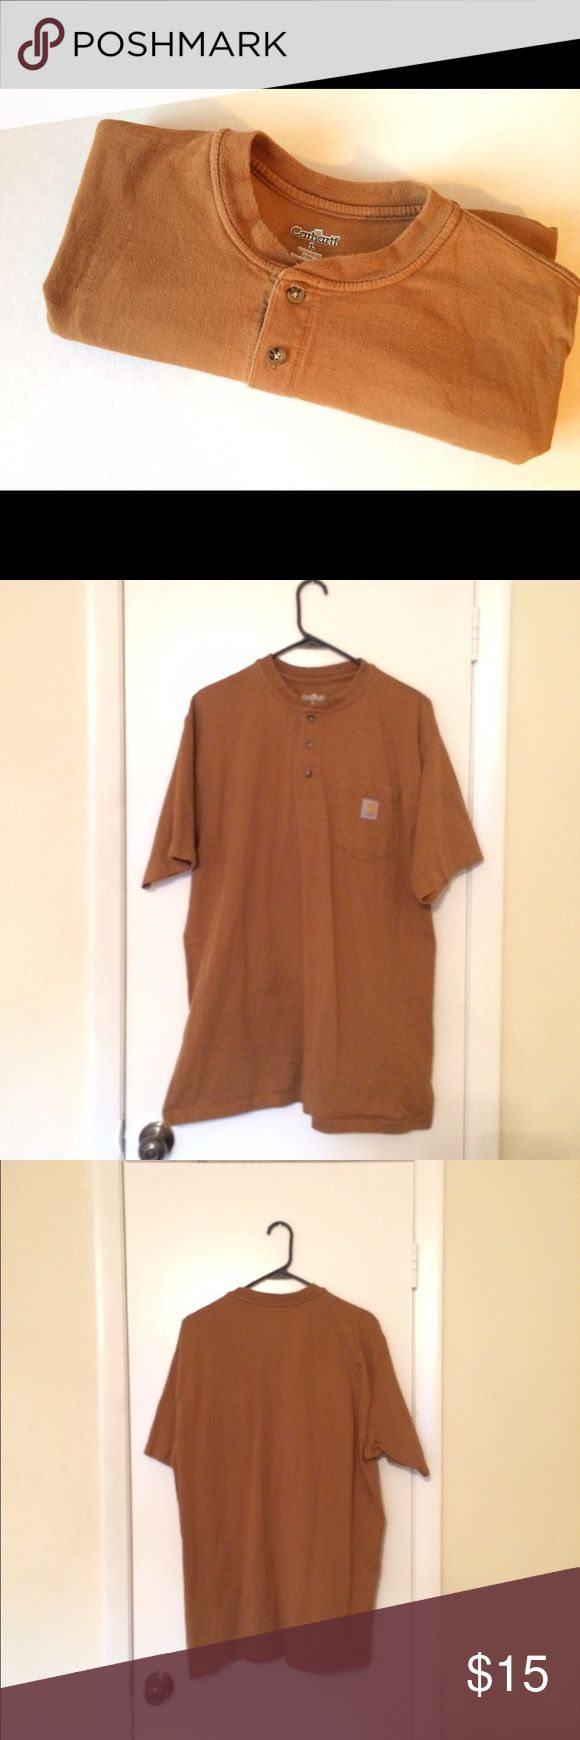 Men's Carhartt Shirt A Men's Carhartt Shirt Sleeve Shirt. In a size L. In great condition, but there is a small paint on the bottom back of the Shirt. Price is negotiable so make me an offer.👍🏻 Thank you.☺️ ❌No Trades❌ Carhartt Shirts Tees - Short Sleeve